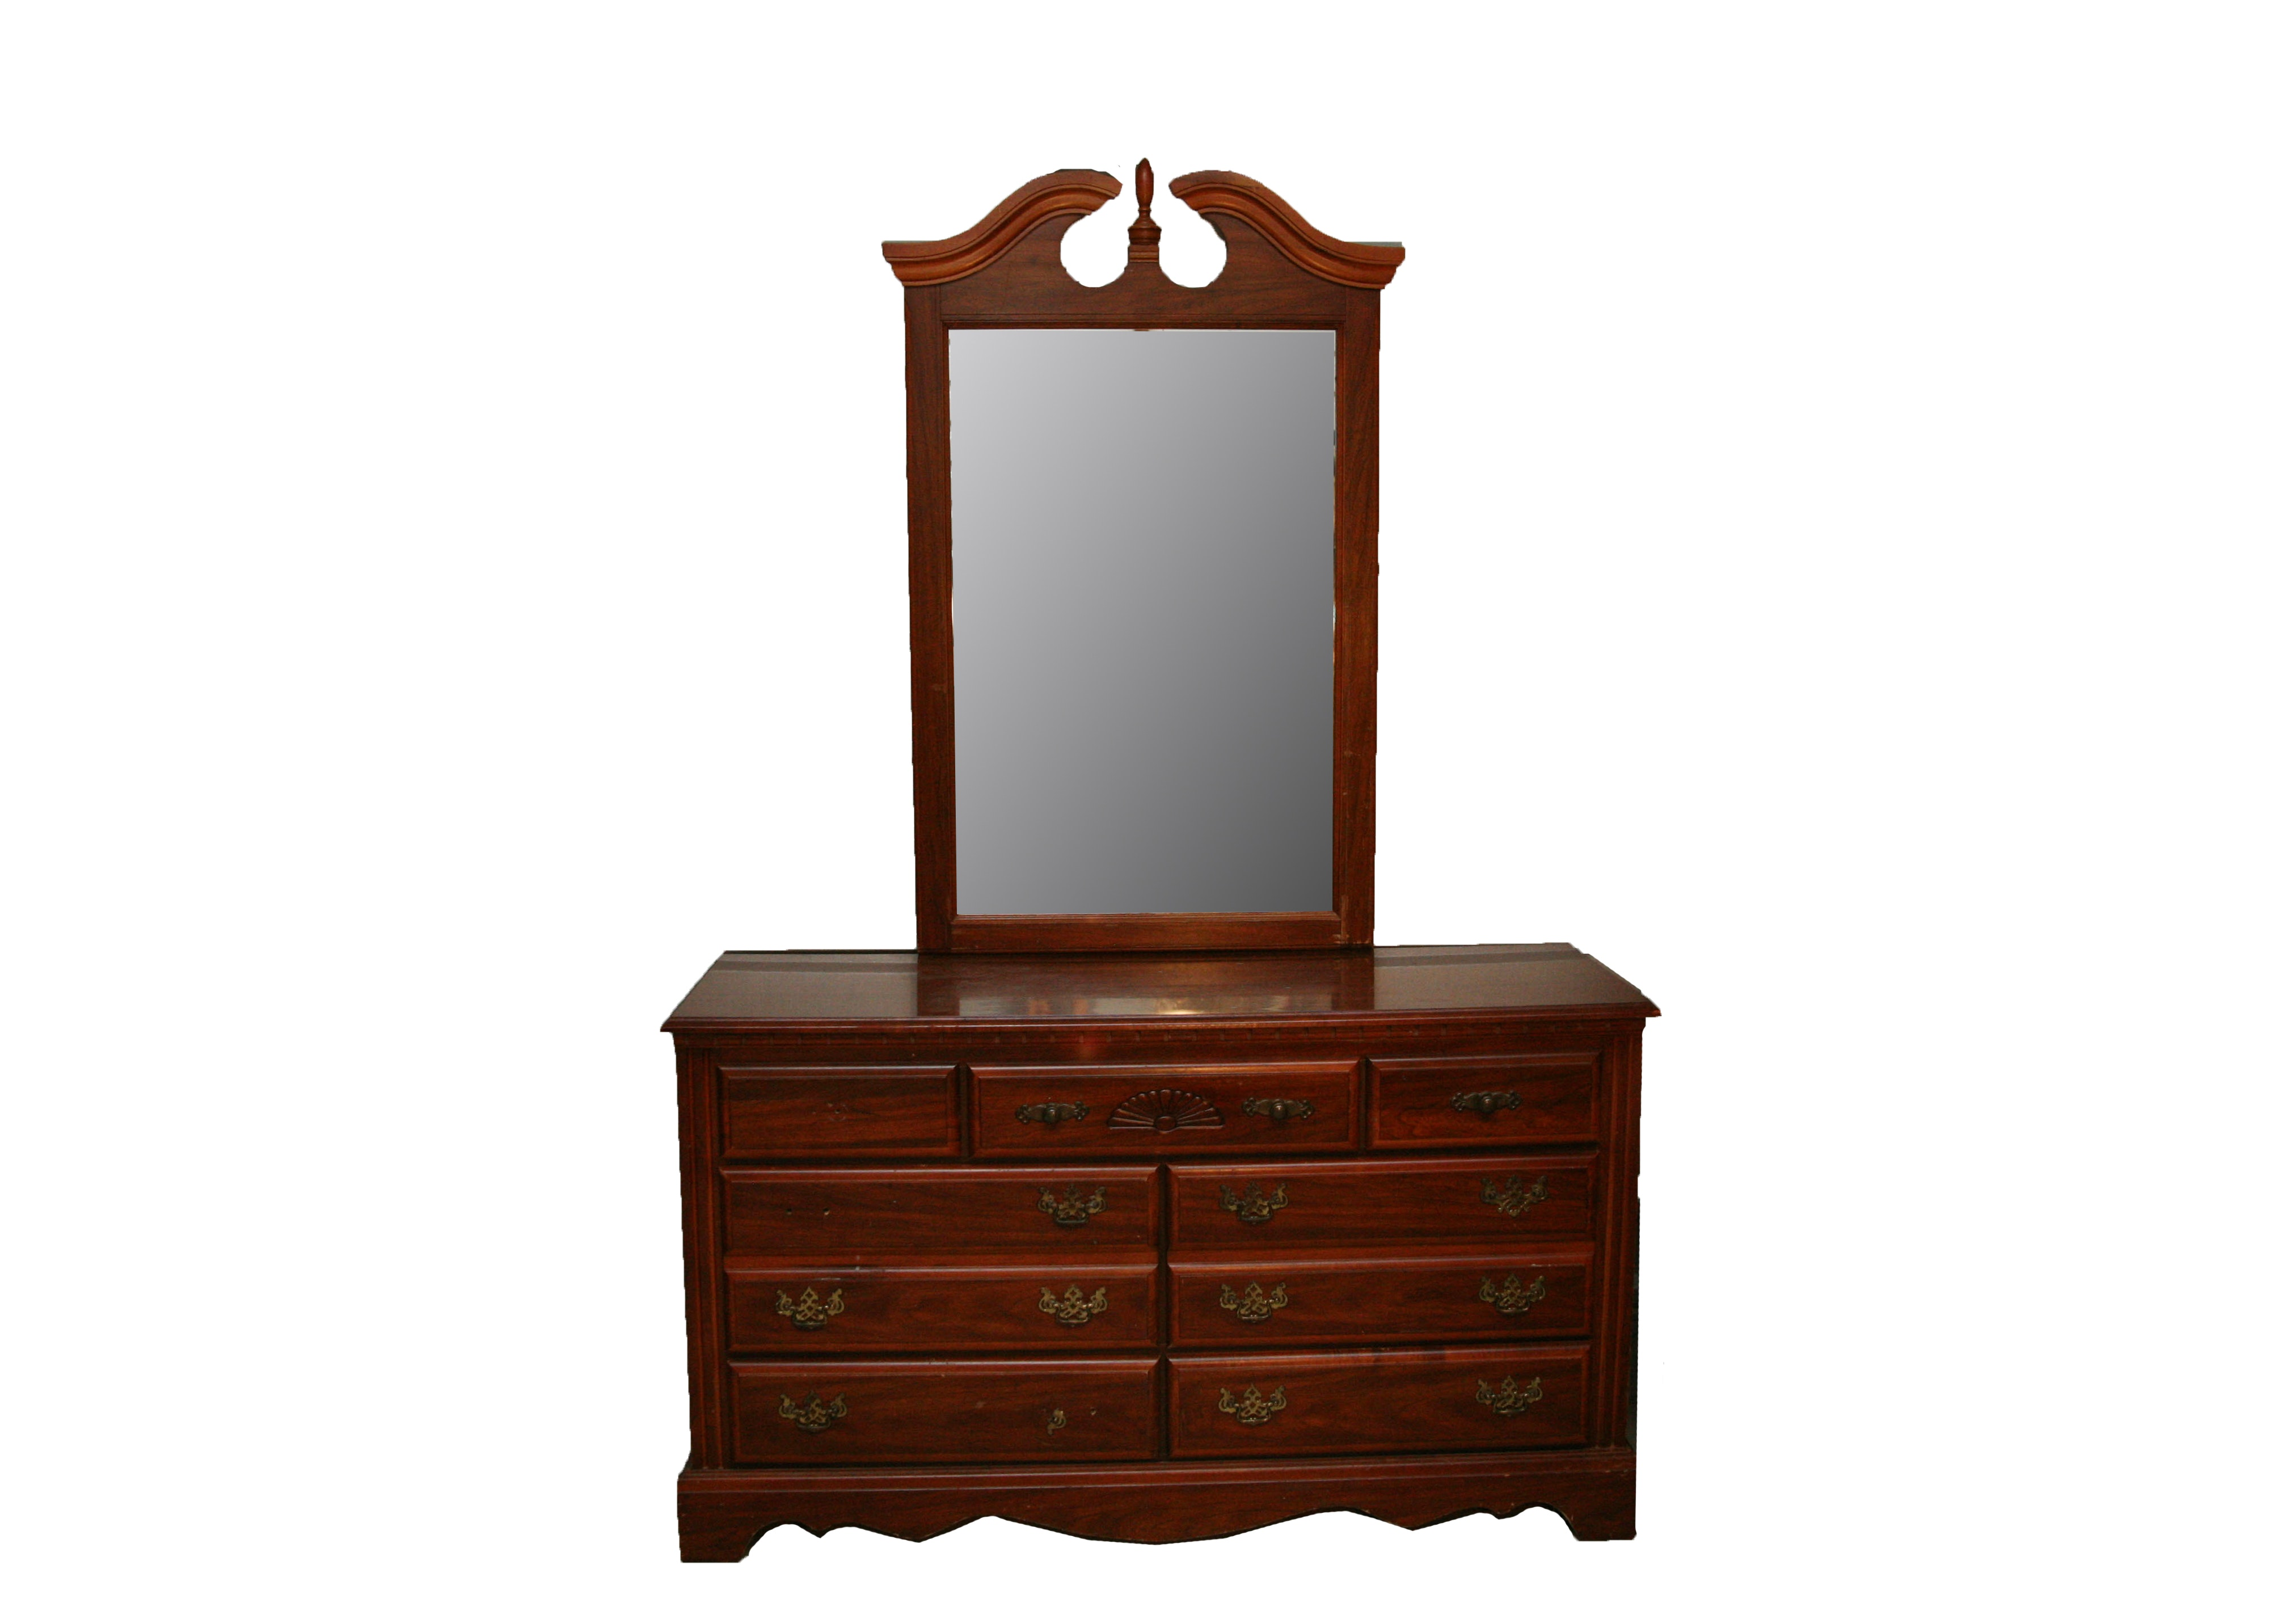 Federal Style Chest of Drawers with Mirror by Broyhill